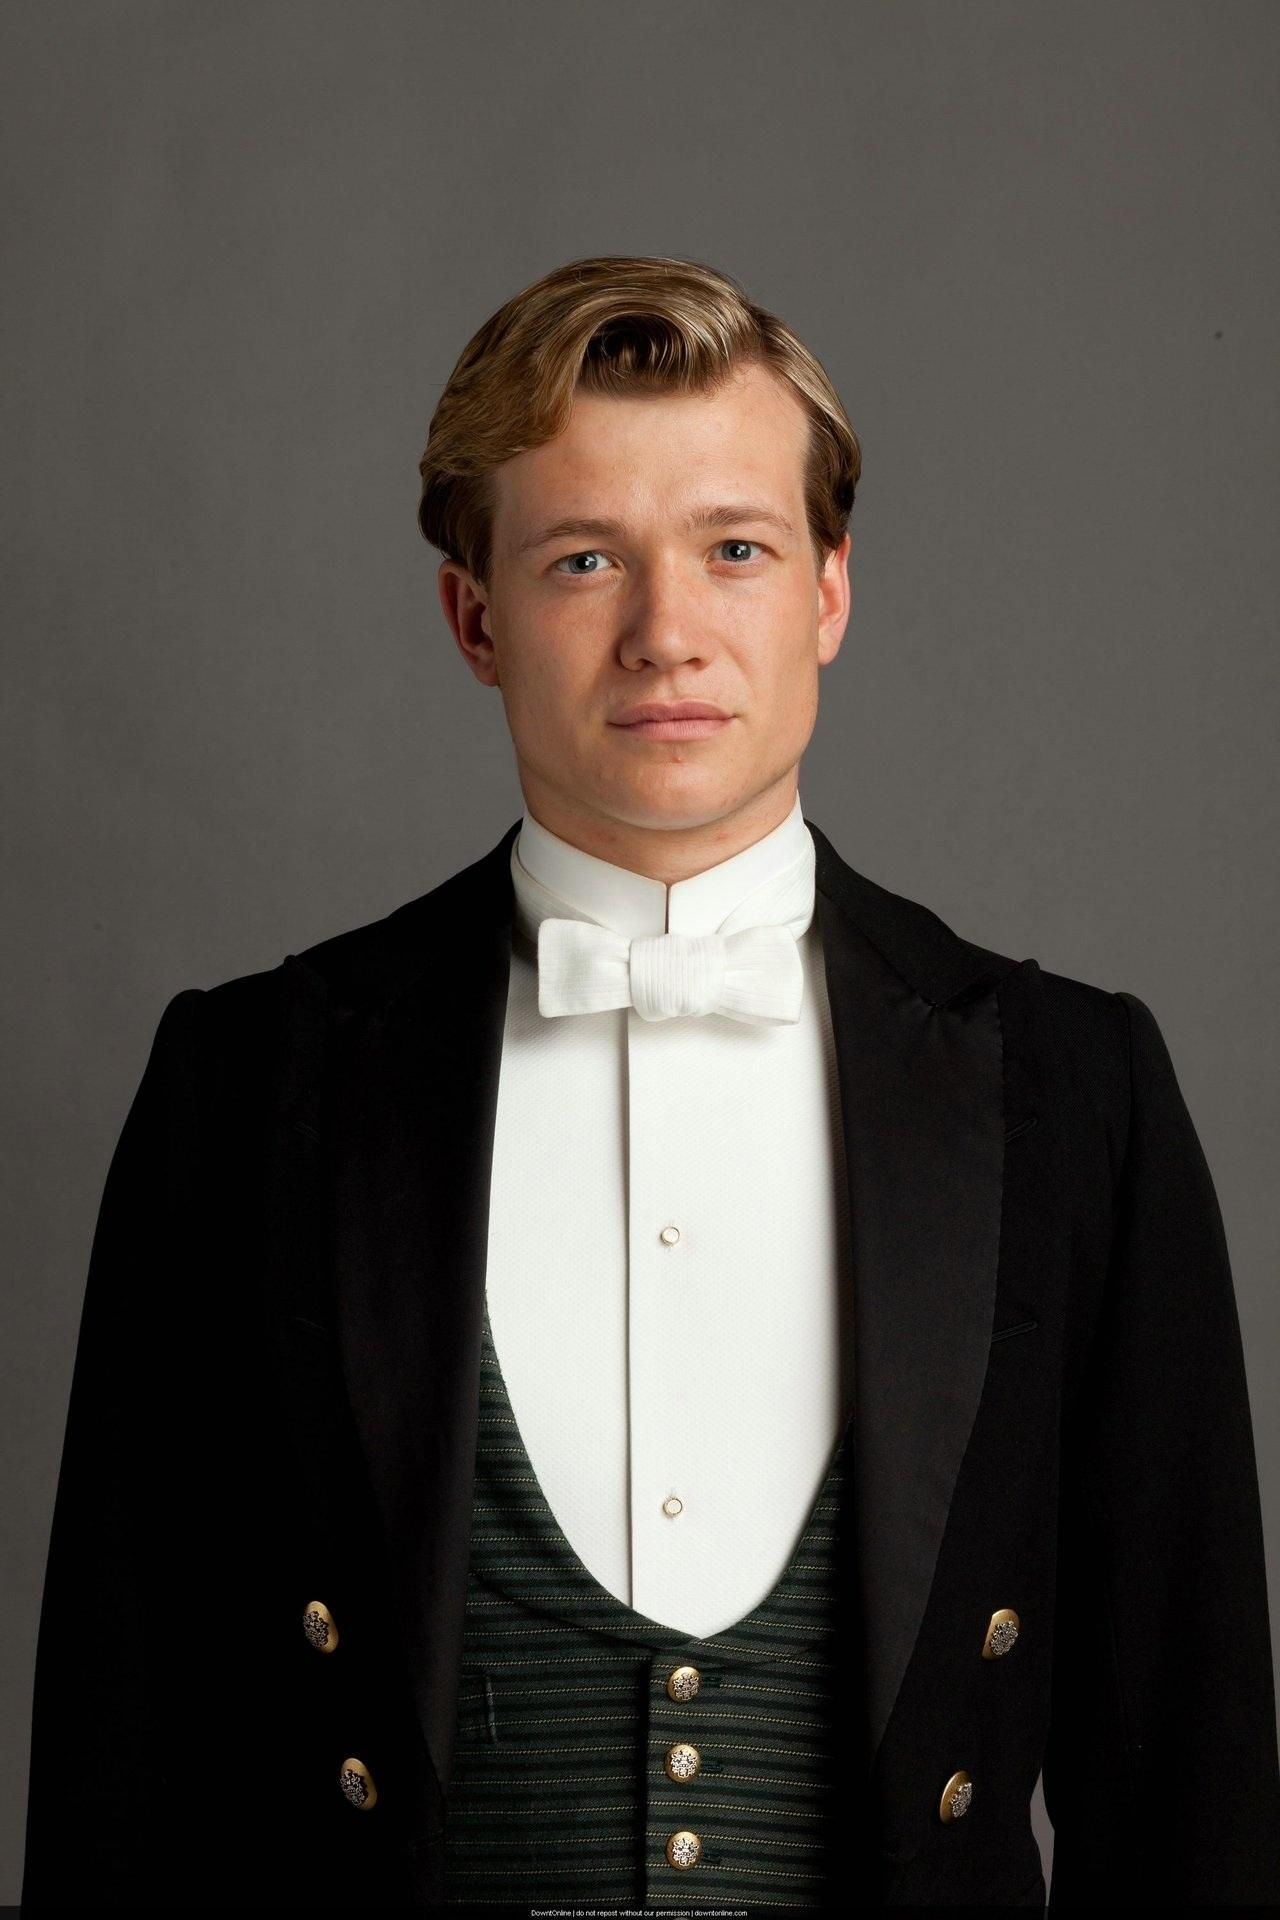 Ed Speleers wearing a suit with a bow tie